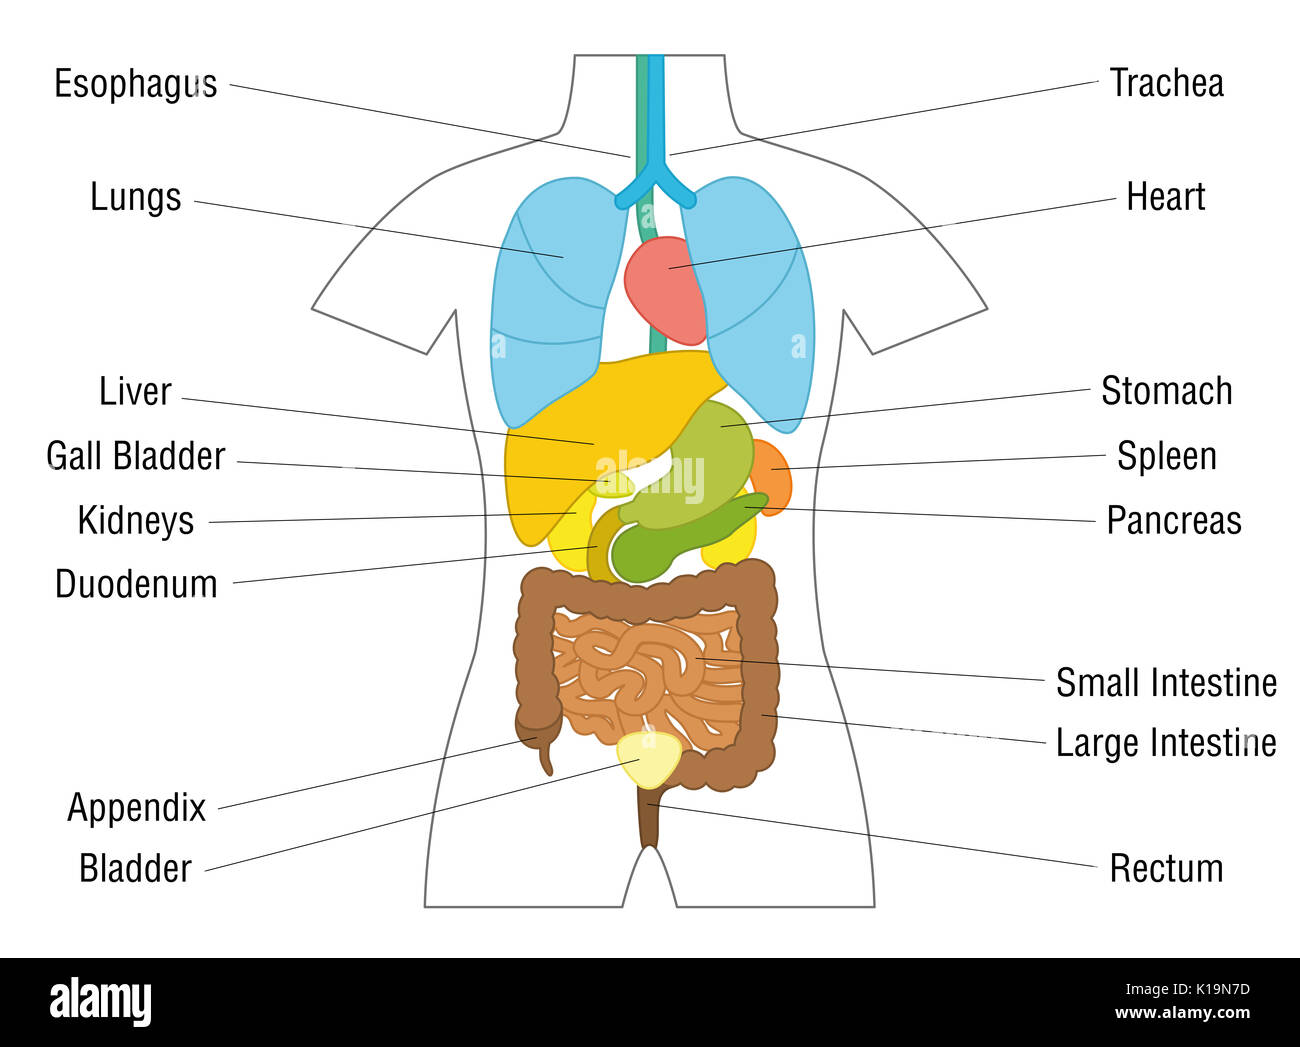 Pancreas Diagram Stock Photos Amp Pancreas Diagram Stock Images